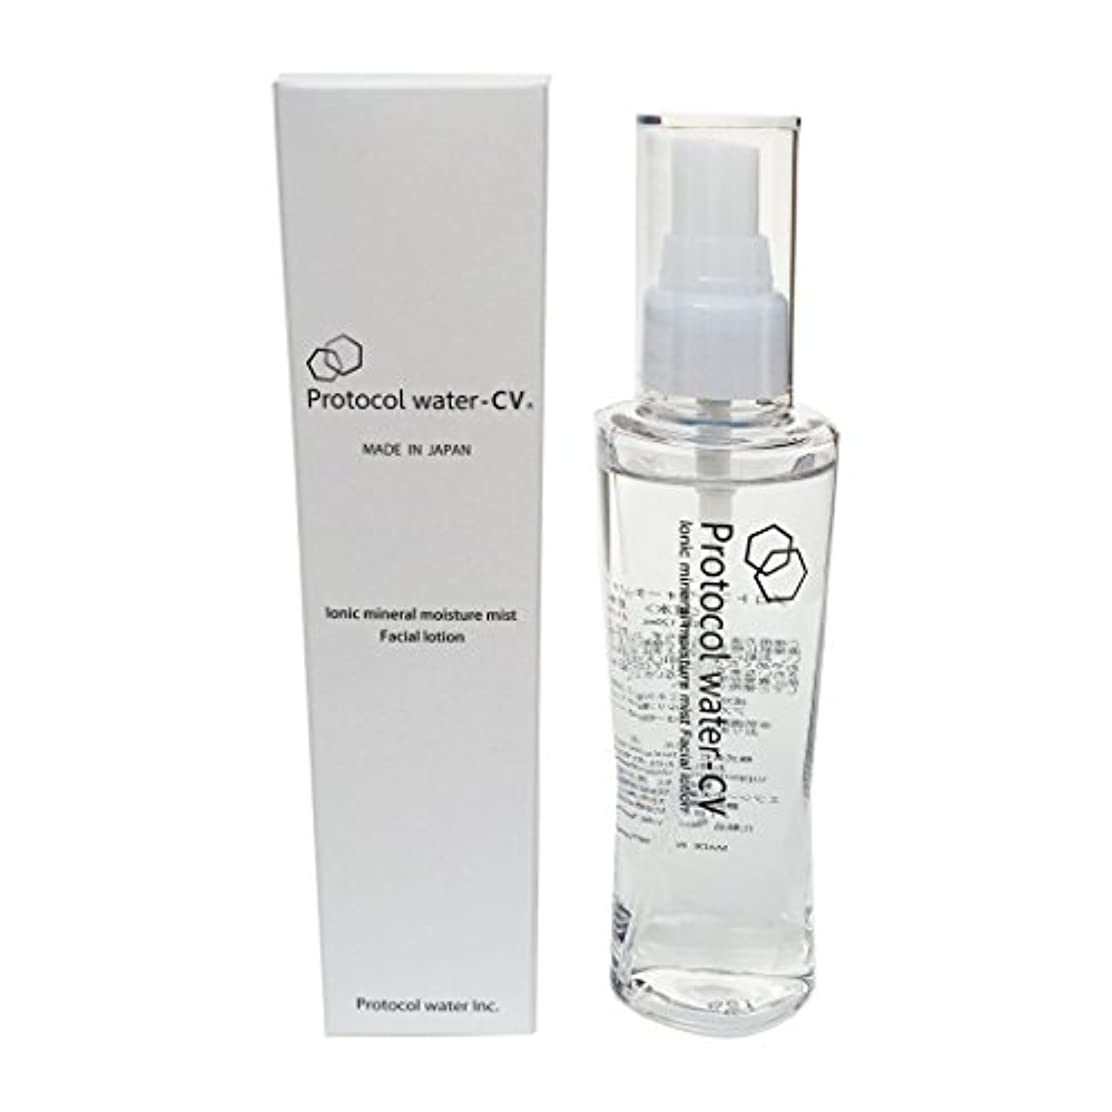 Protocol water CV Ionic's mineral moisture mist Facial lotion / プロトコル ウォーター CV